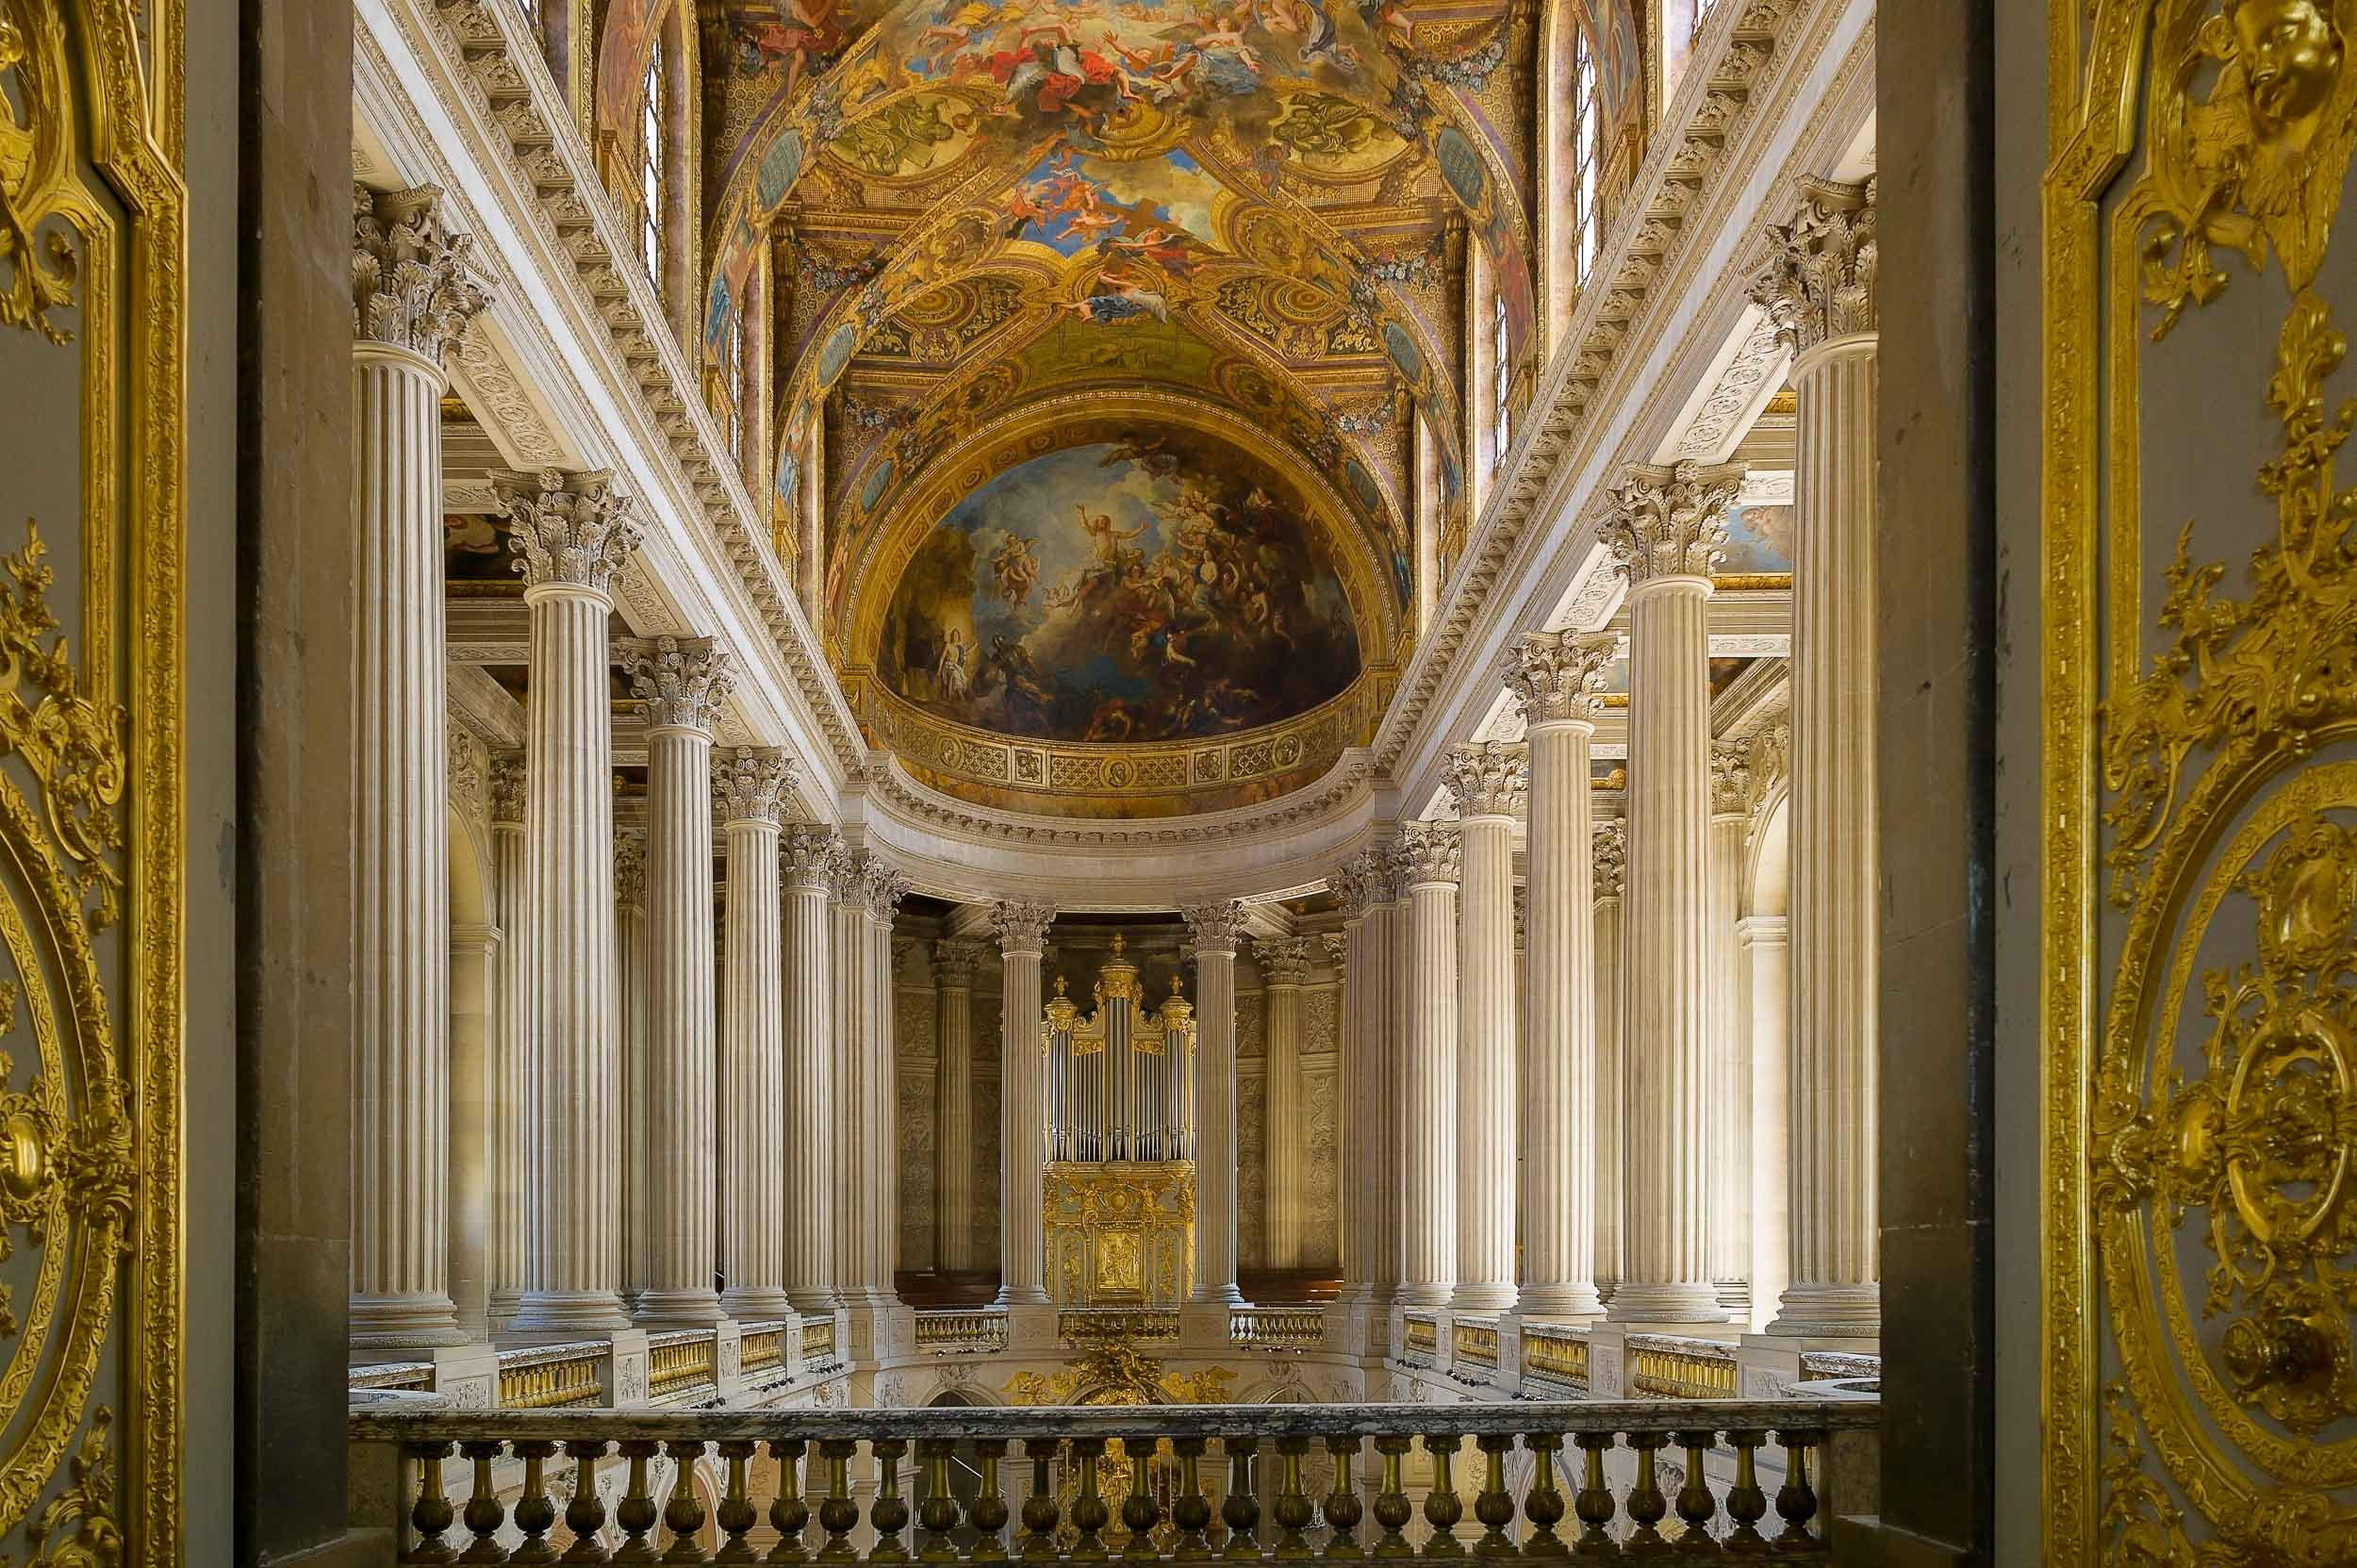 An    interior view    of the spectacular    Palace of Versailles   , France.